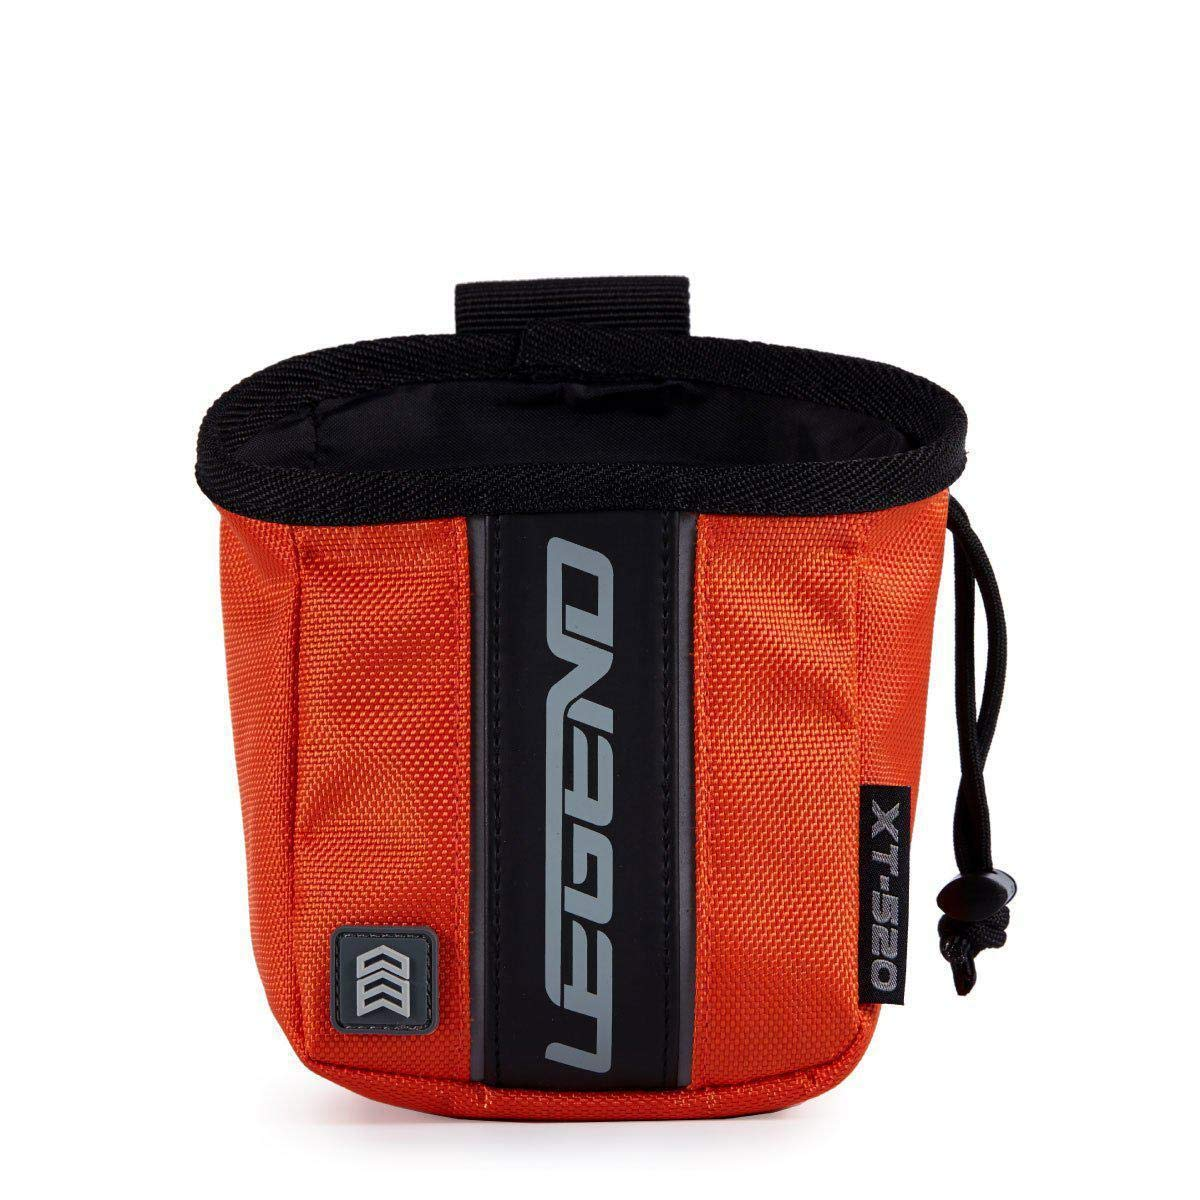 Legend Archery Release Aids Pouch Bag with Belt Loop Draw String and Zipped Pocket XT520 (Orange) by Legend